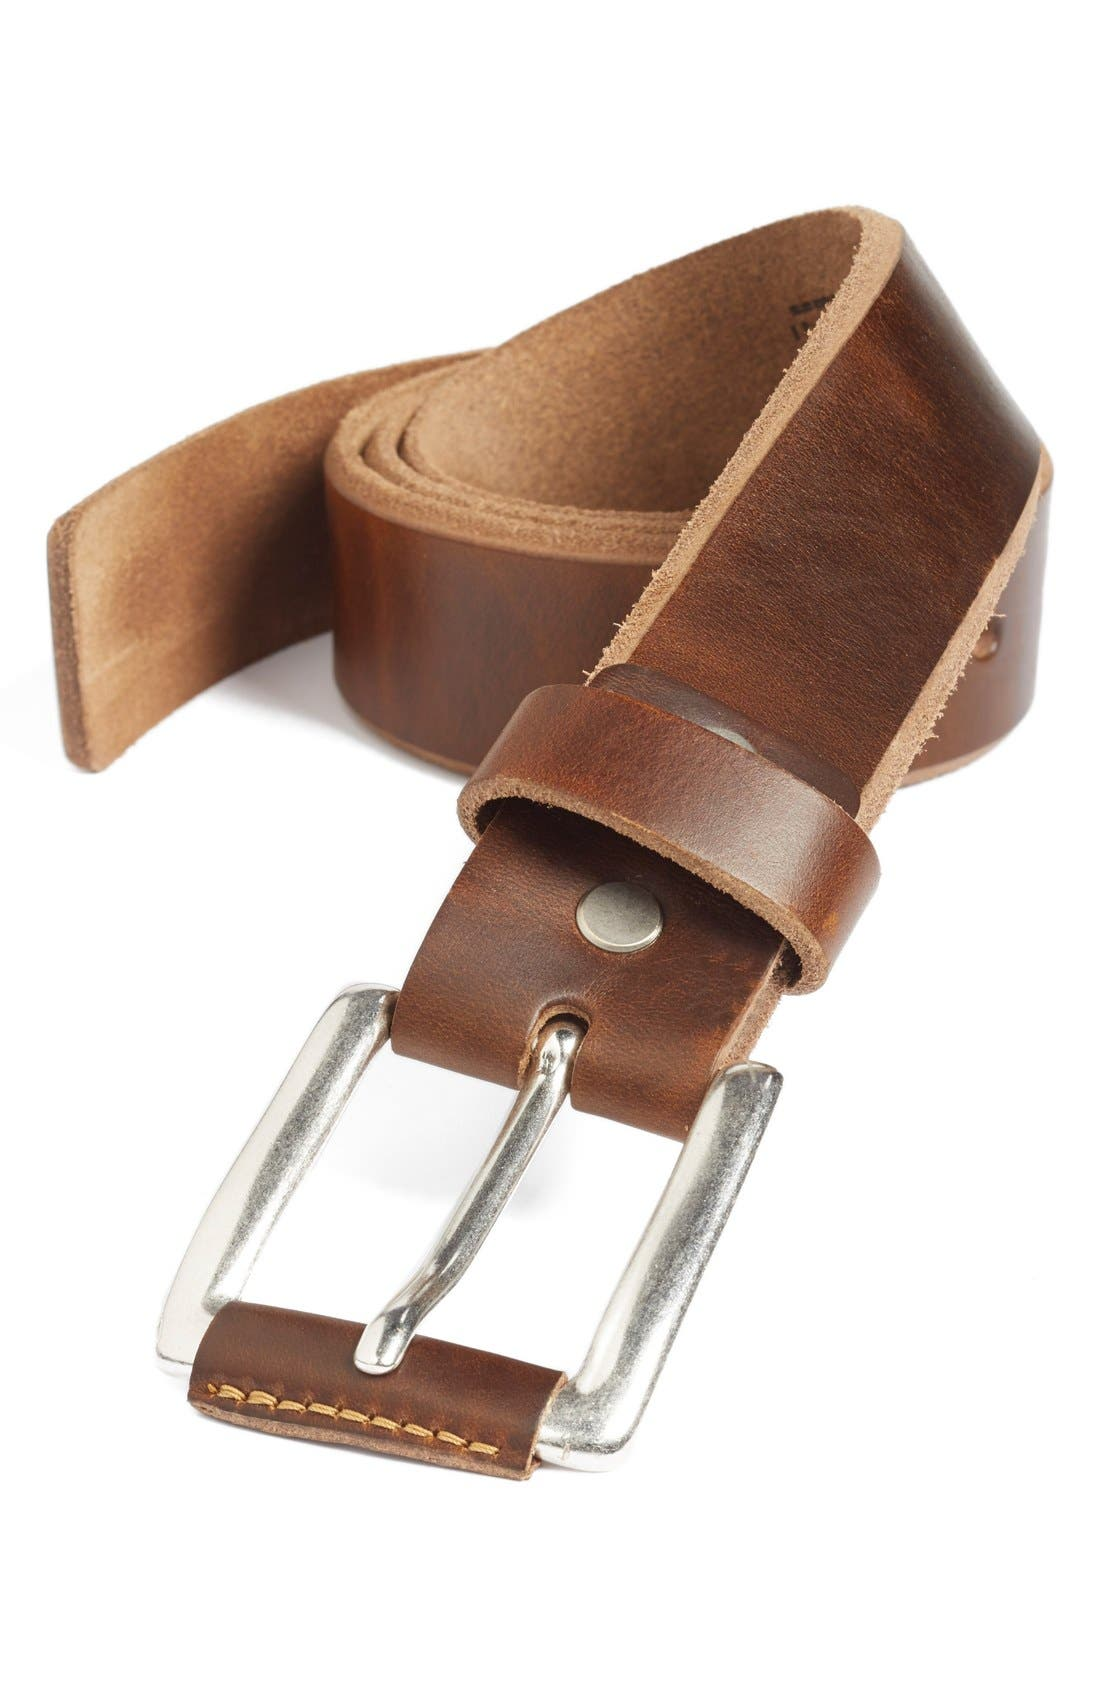 REMO TULLIANI 'Coraggio' Leather Belt